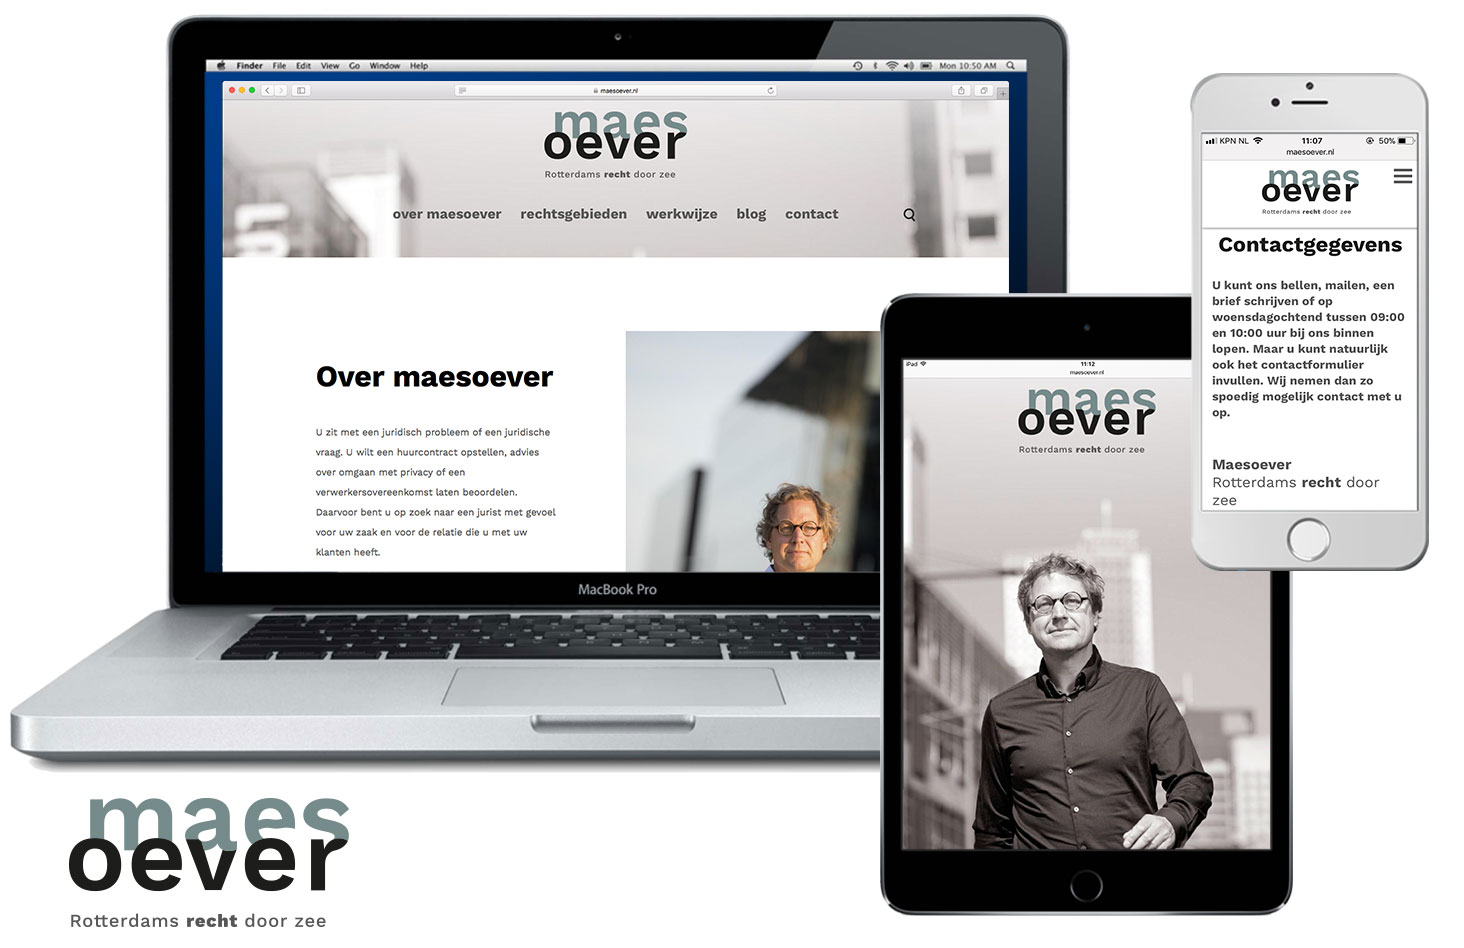 Maesoever-website-macbook-ipad-iphone-2